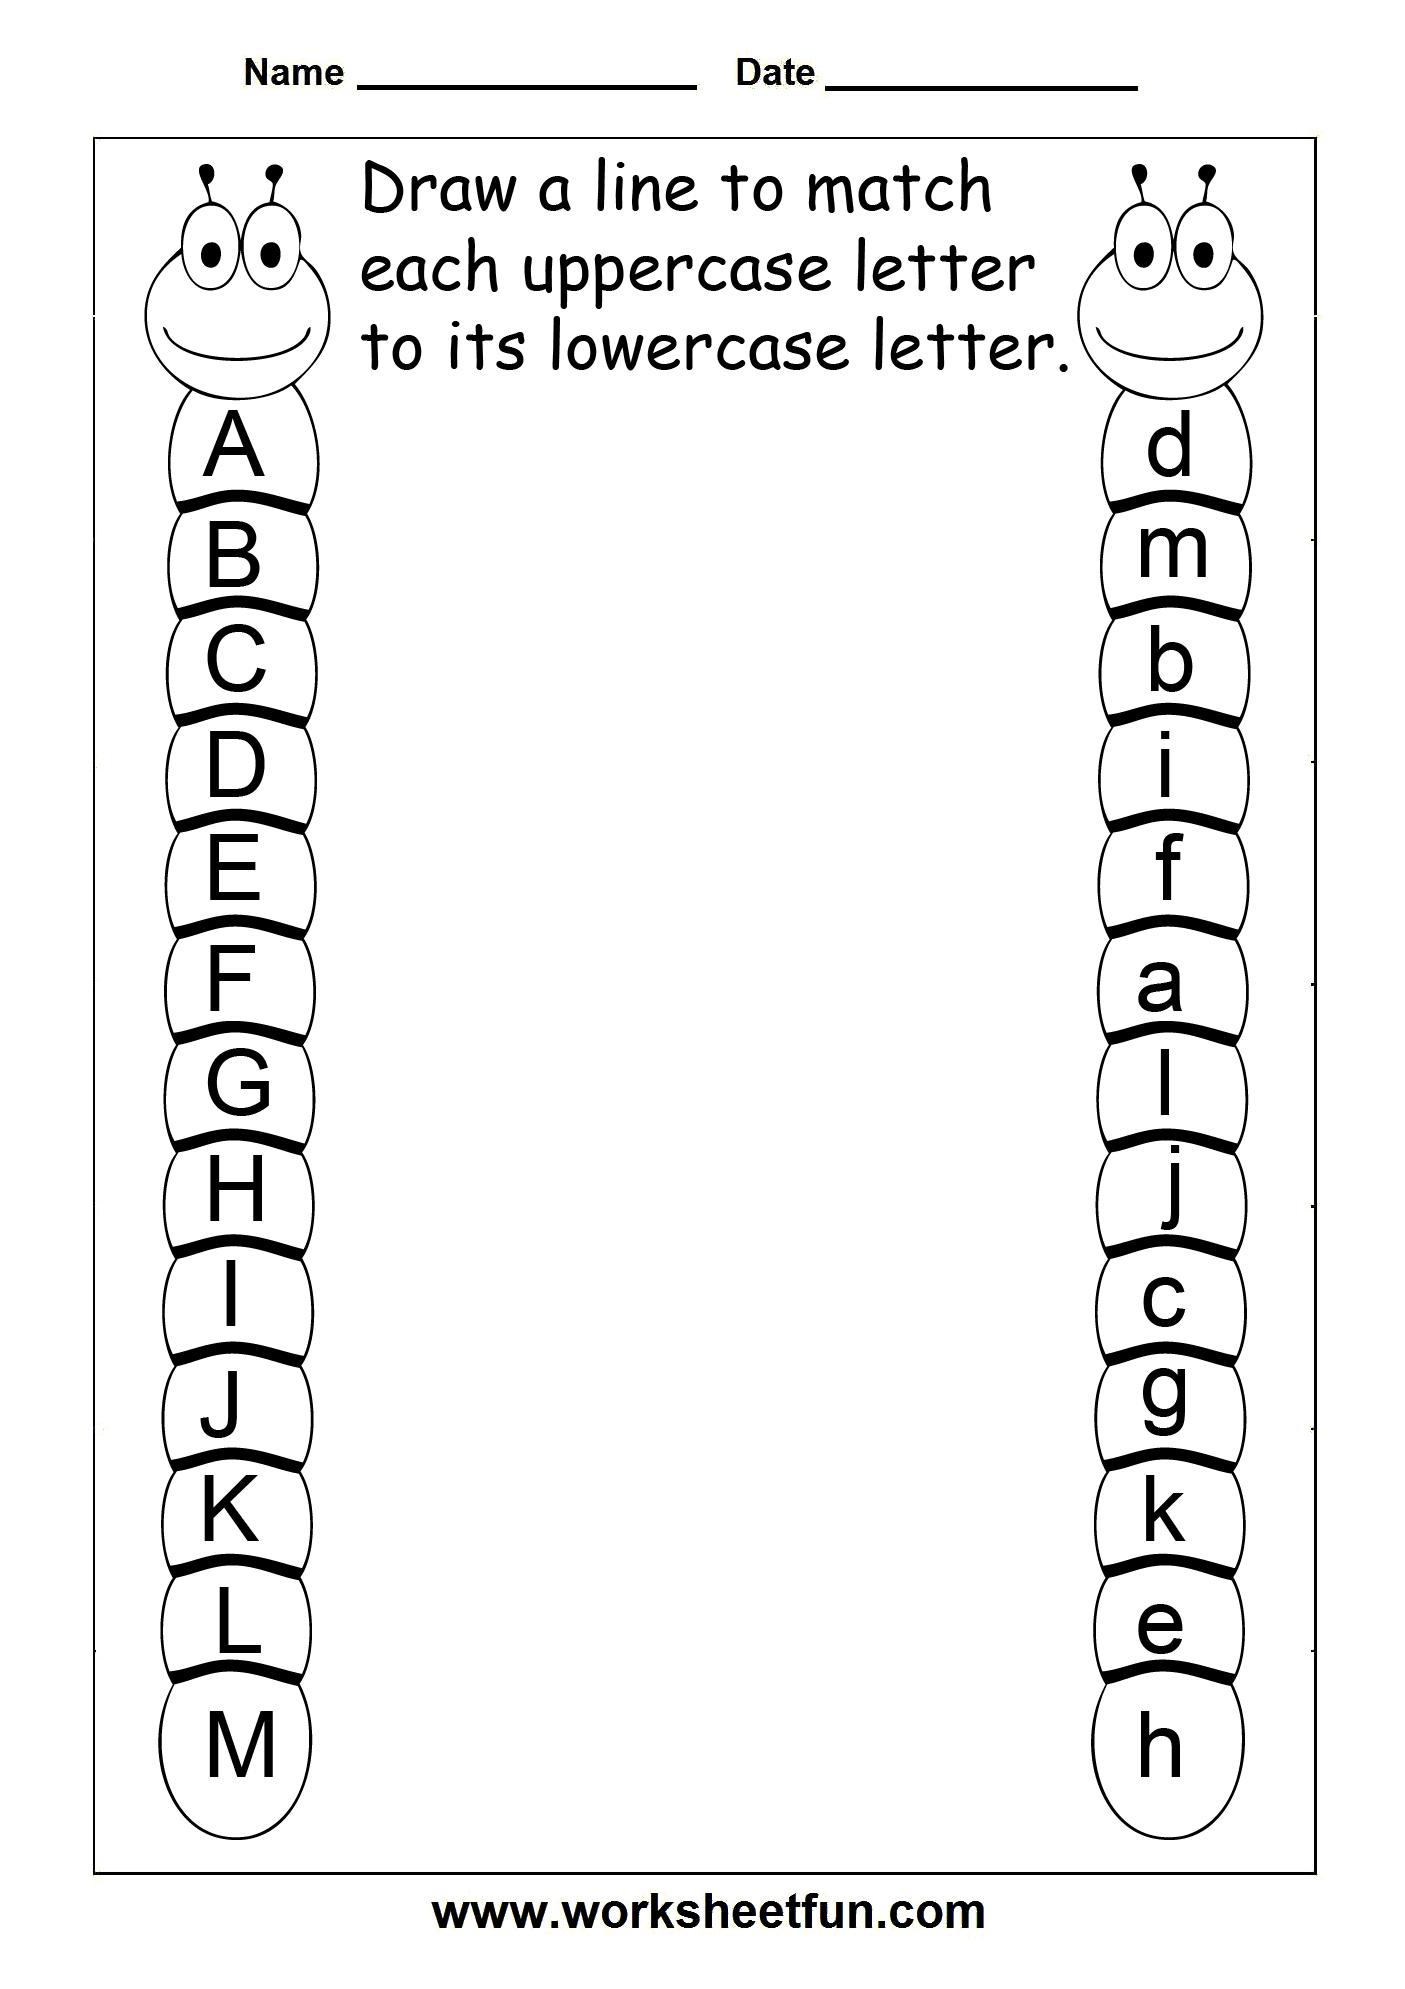 Weirdmailus  Nice  Images About Work Worksheet On Pinterest  Hidden Pictures  With Lovable  Images About Work Worksheet On Pinterest  Hidden Pictures Color By Numbers And Puzzles With Endearing Math Revision Worksheets Also Free Worksheet On Fractions In Addition Good Manners Worksheet And Mathswatch Worksheets As Well As Compound Nouns Exercises Worksheets Additionally Worksheets For Class  From Pinterestcom With Weirdmailus  Lovable  Images About Work Worksheet On Pinterest  Hidden Pictures  With Endearing  Images About Work Worksheet On Pinterest  Hidden Pictures Color By Numbers And Puzzles And Nice Math Revision Worksheets Also Free Worksheet On Fractions In Addition Good Manners Worksheet From Pinterestcom